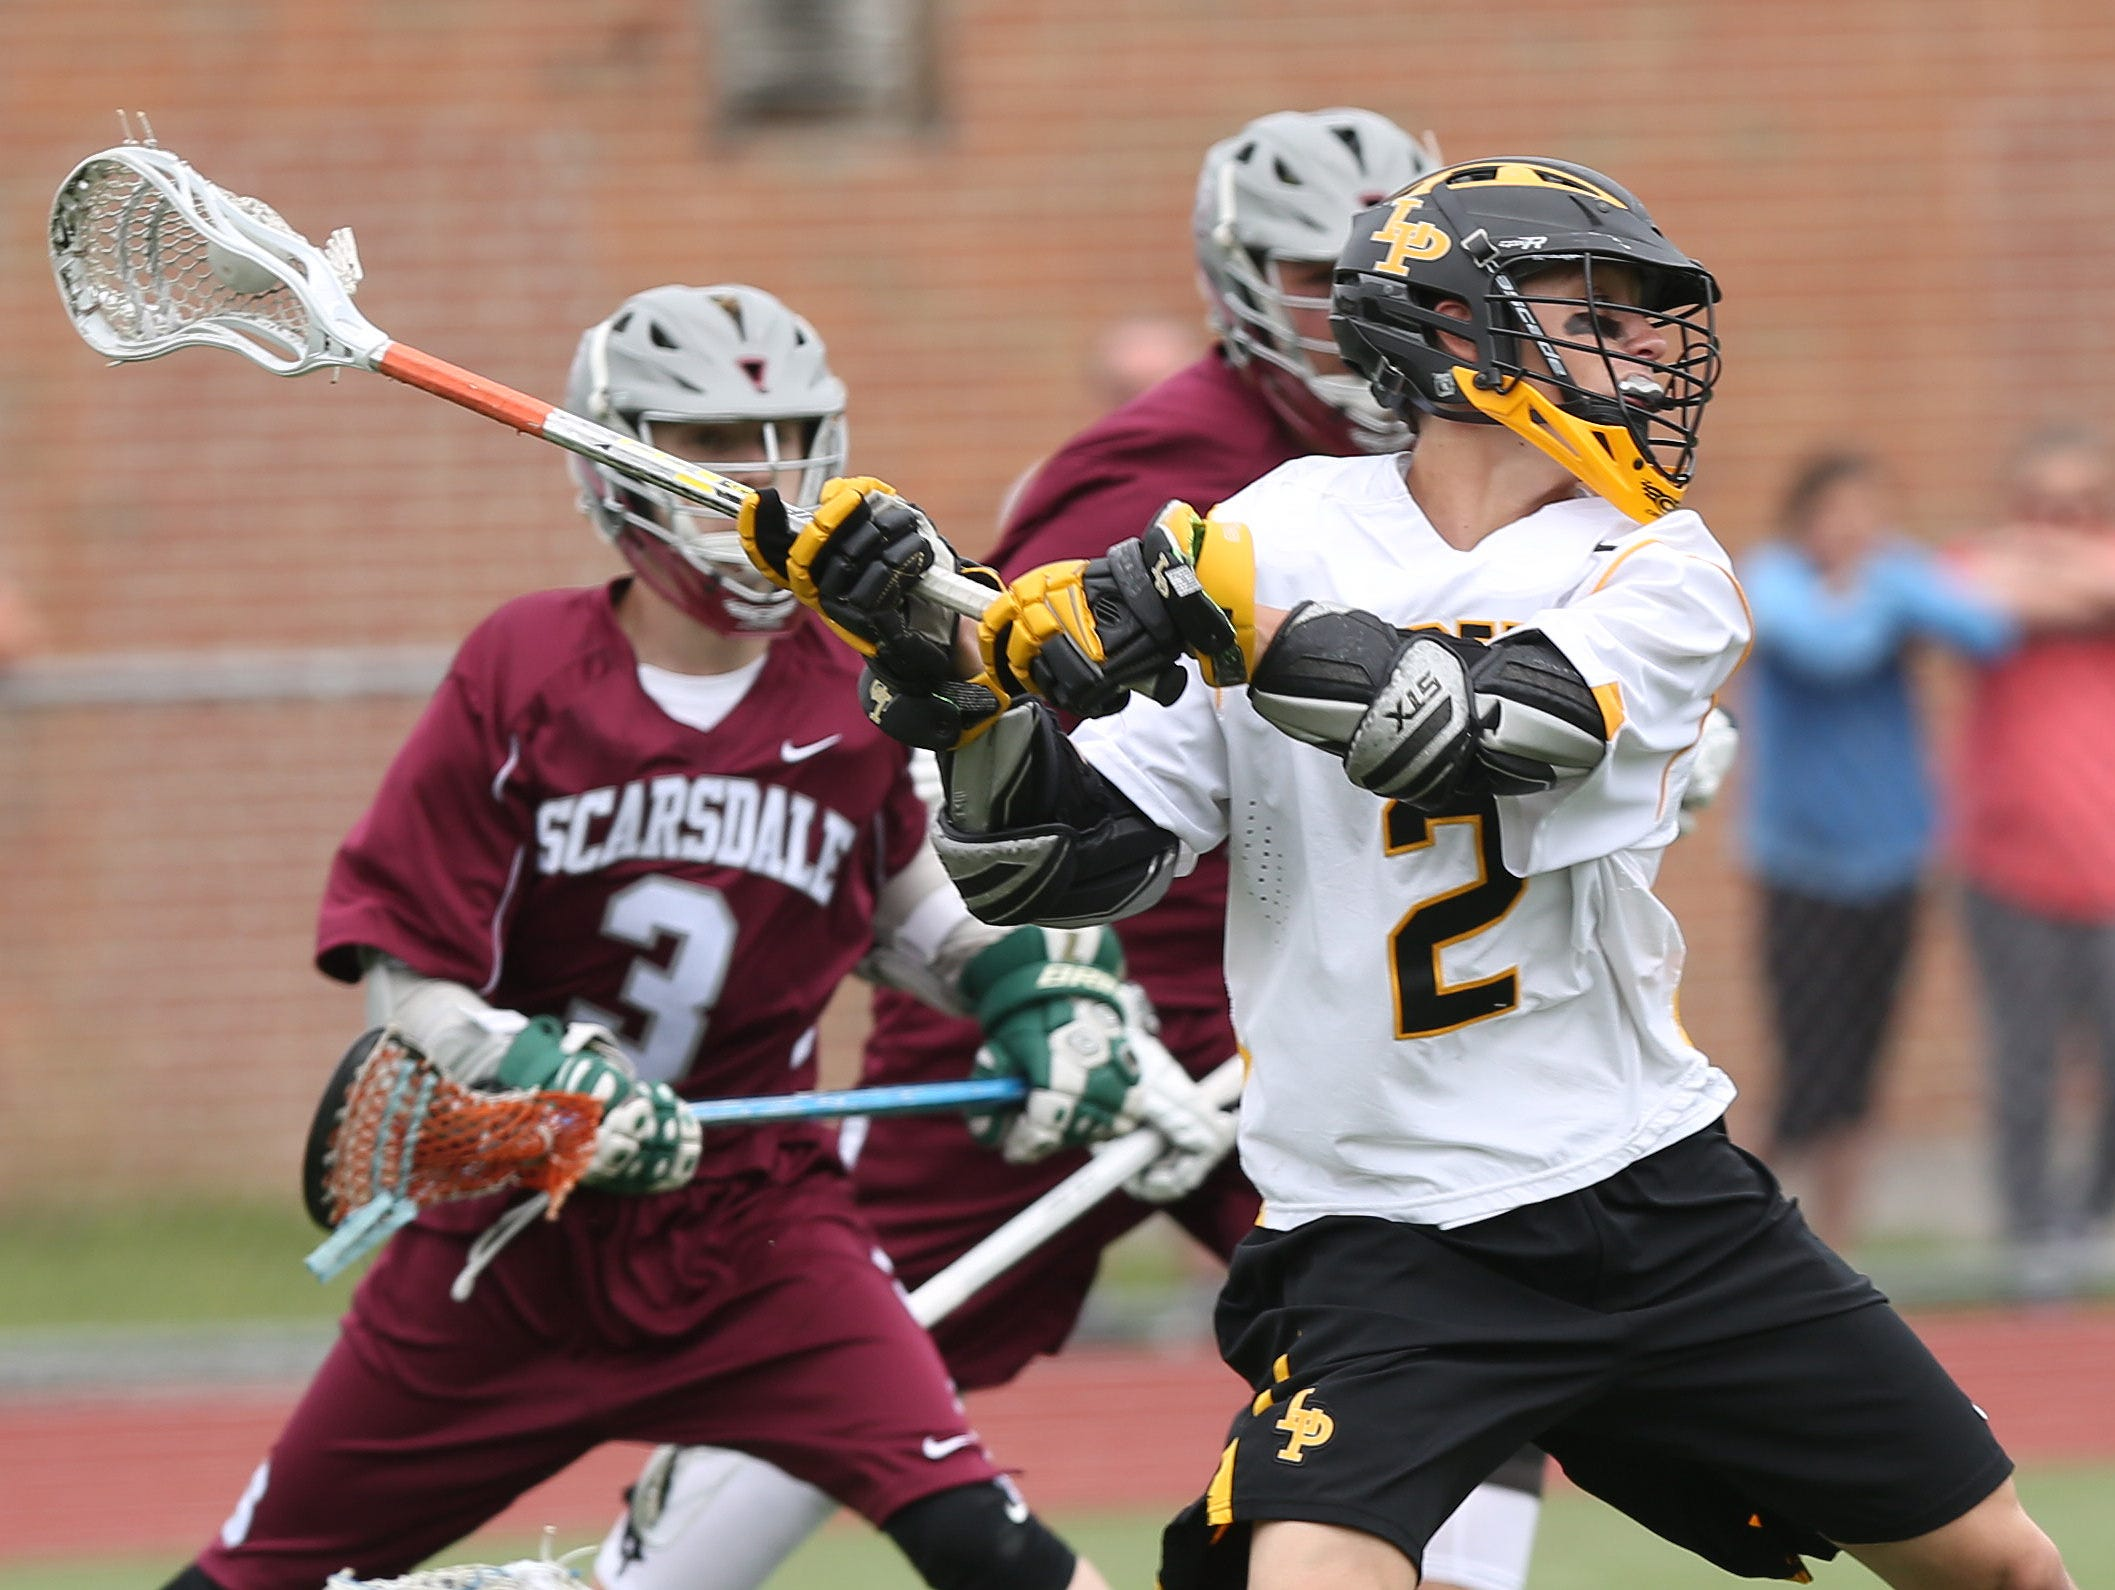 Lakeland/Panas' (2) fires a shot in front of Scarsdale's (3) during second half action in a Section 1 boys lacrosse playoff game at Lakeland High School in Shrub Oak May 21, 2016. Lakeland/Panas won the game 11-7.